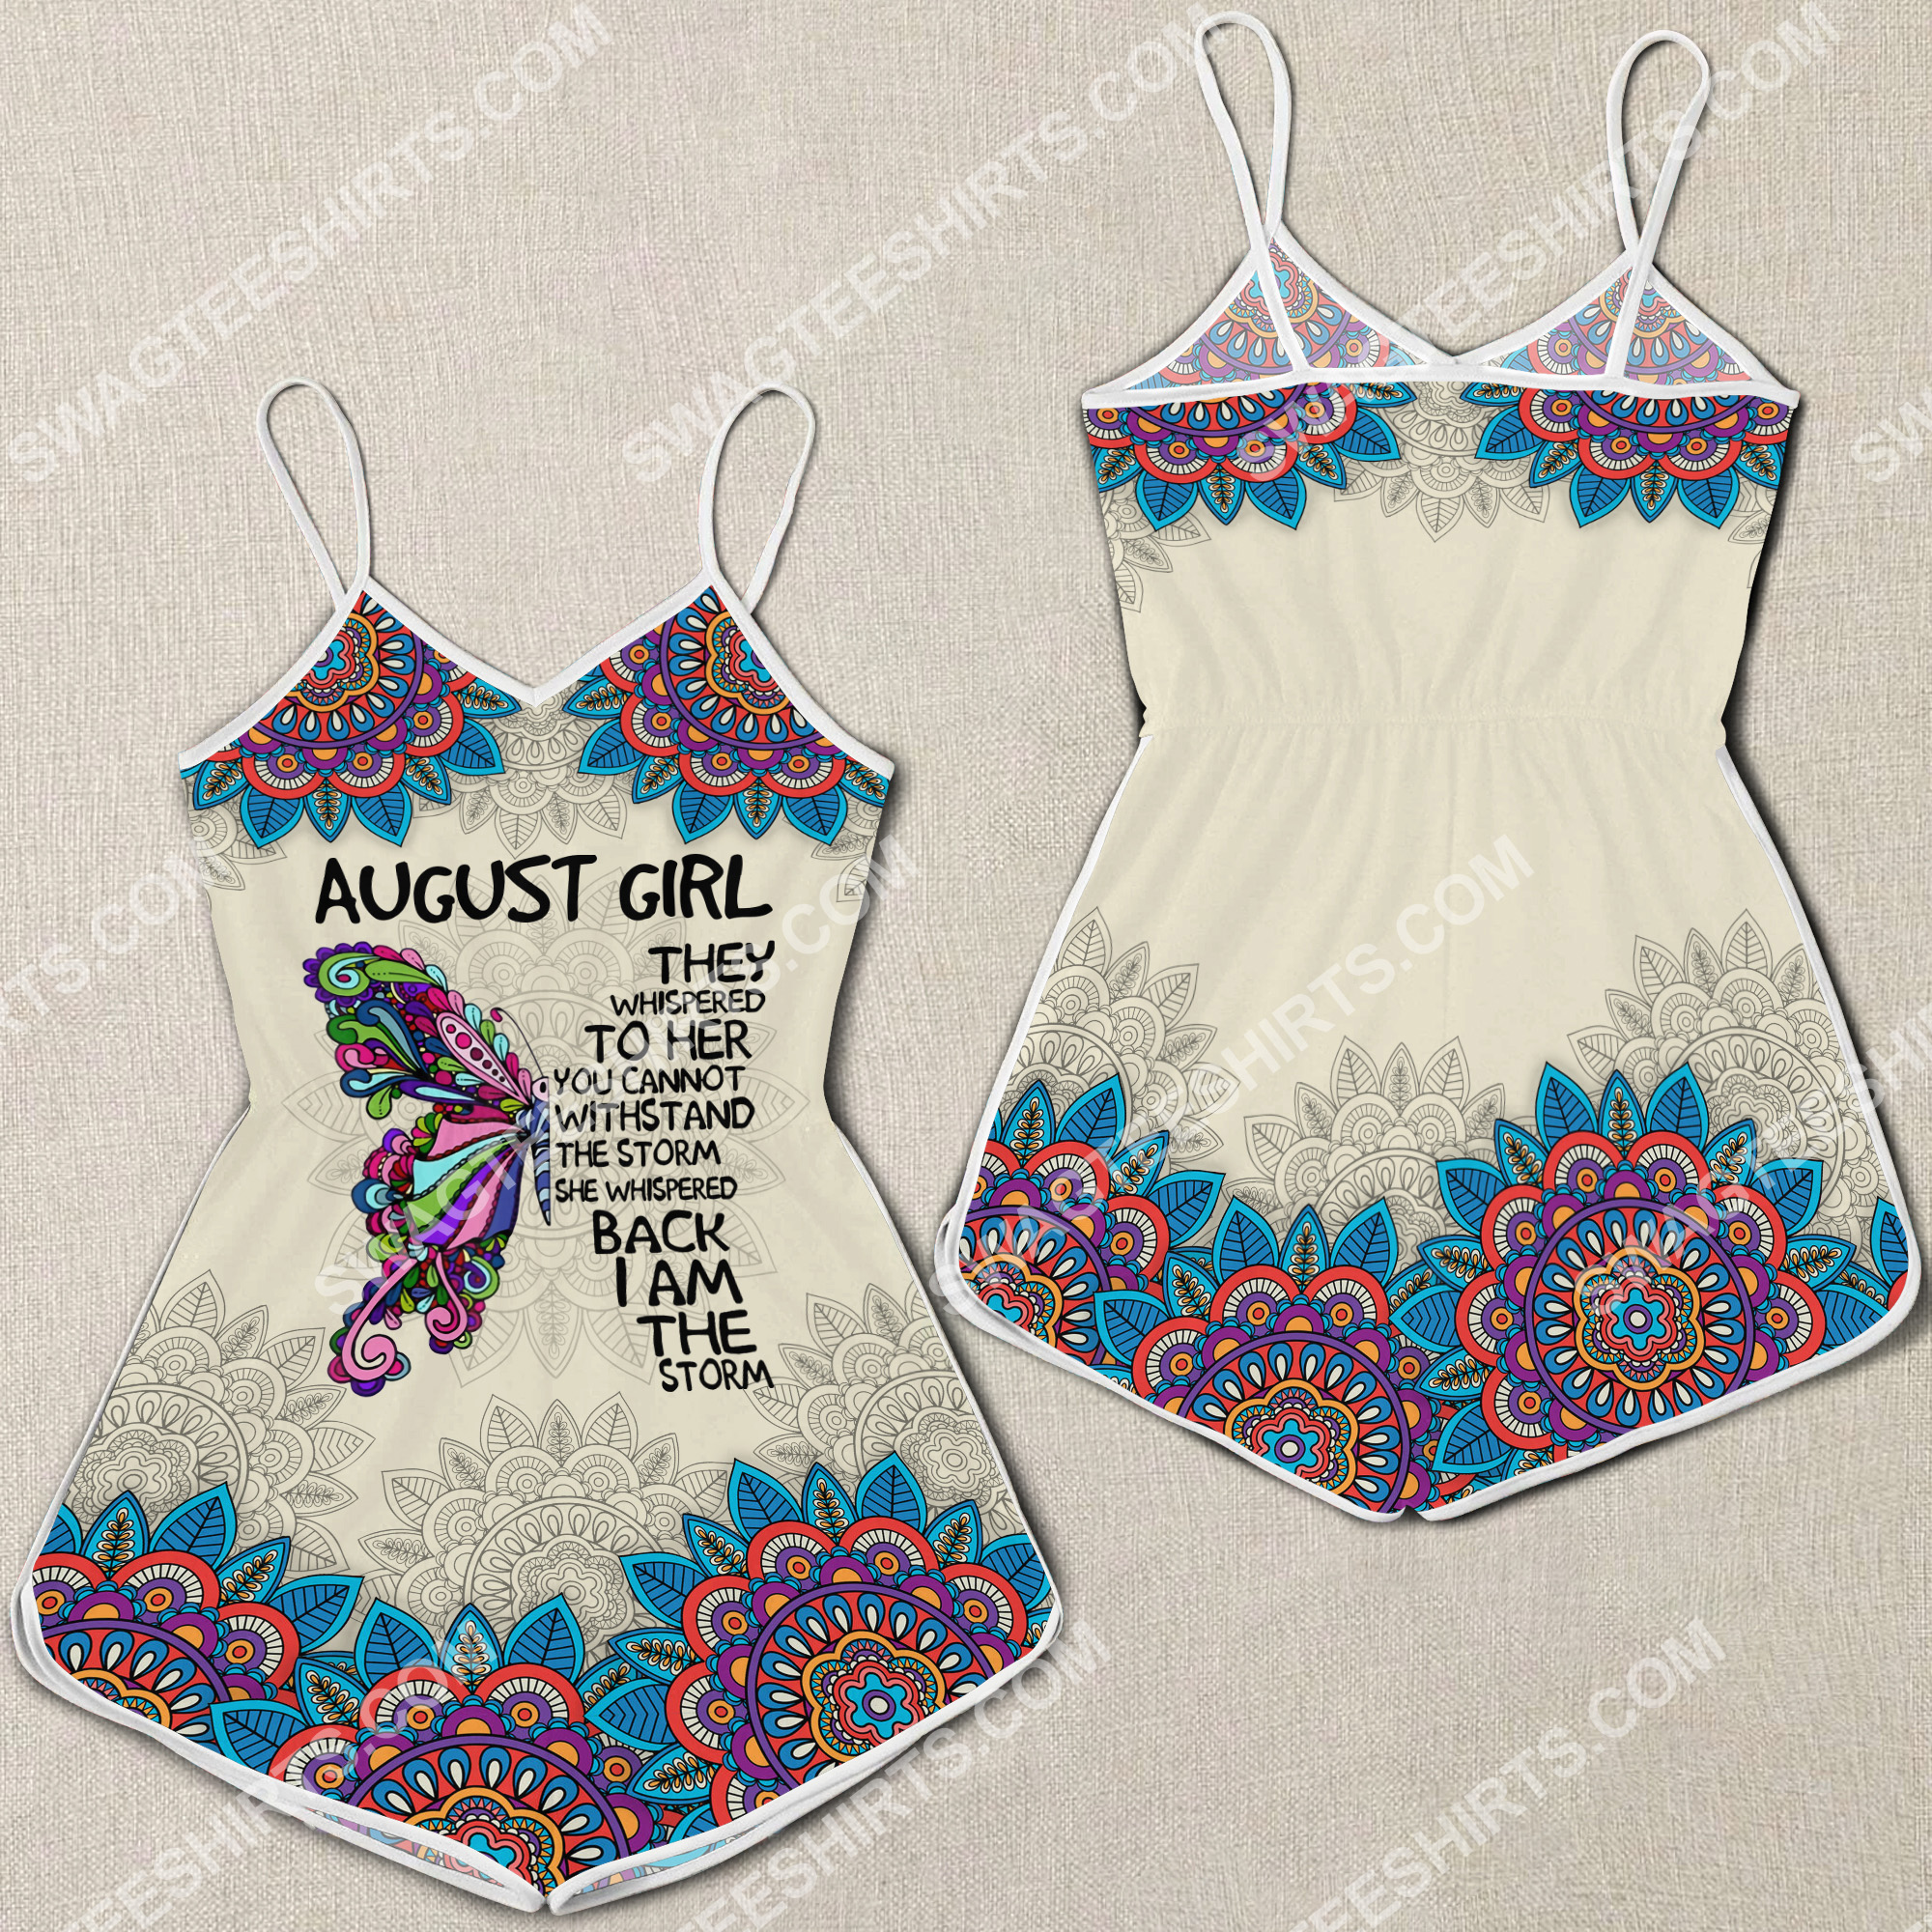 august girl they whispered to her you cannot withstand the storm rompers 2(1)